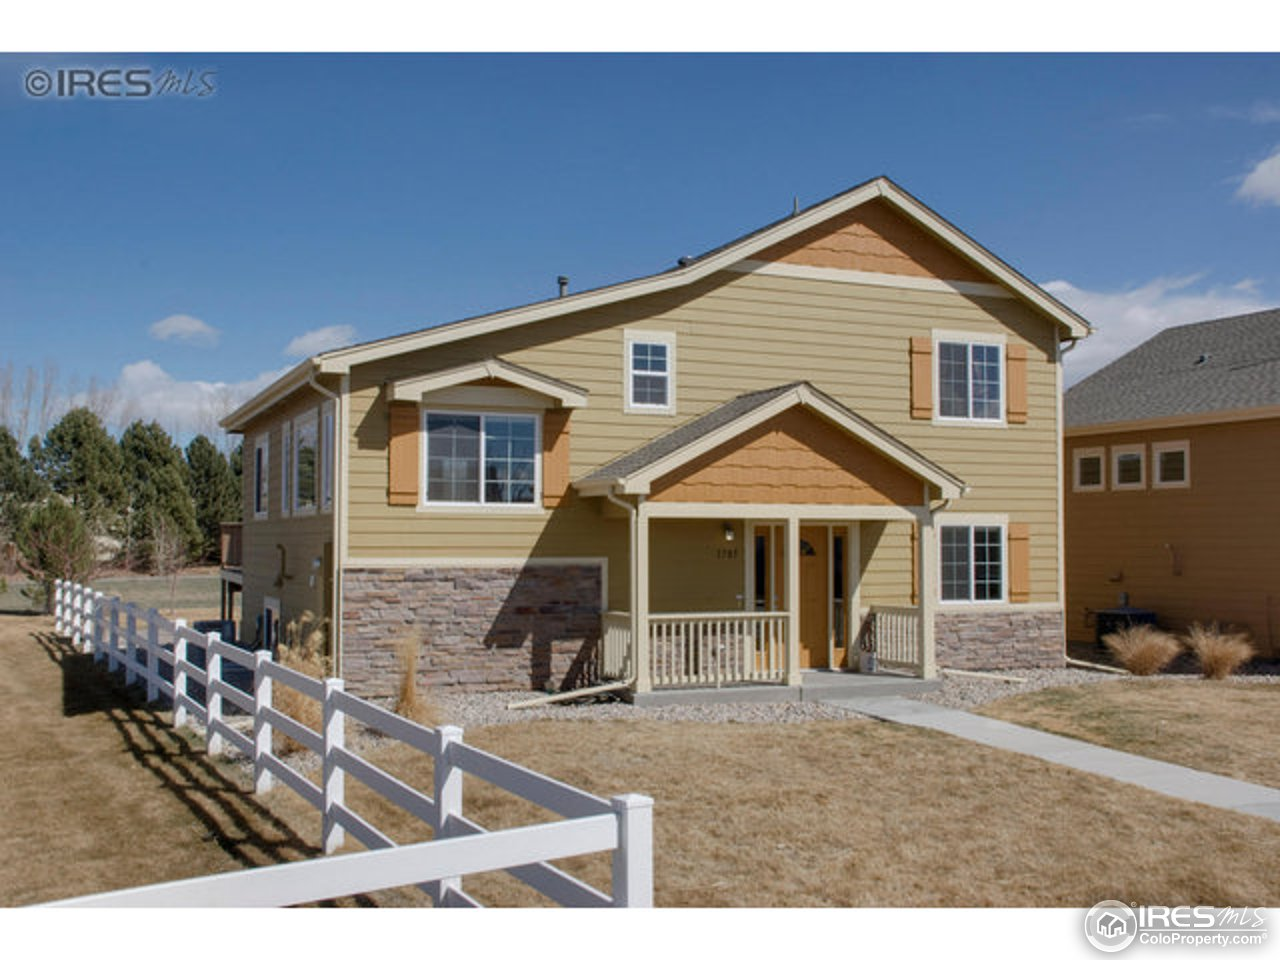 1703 E 11th St, Loveland CO 80537